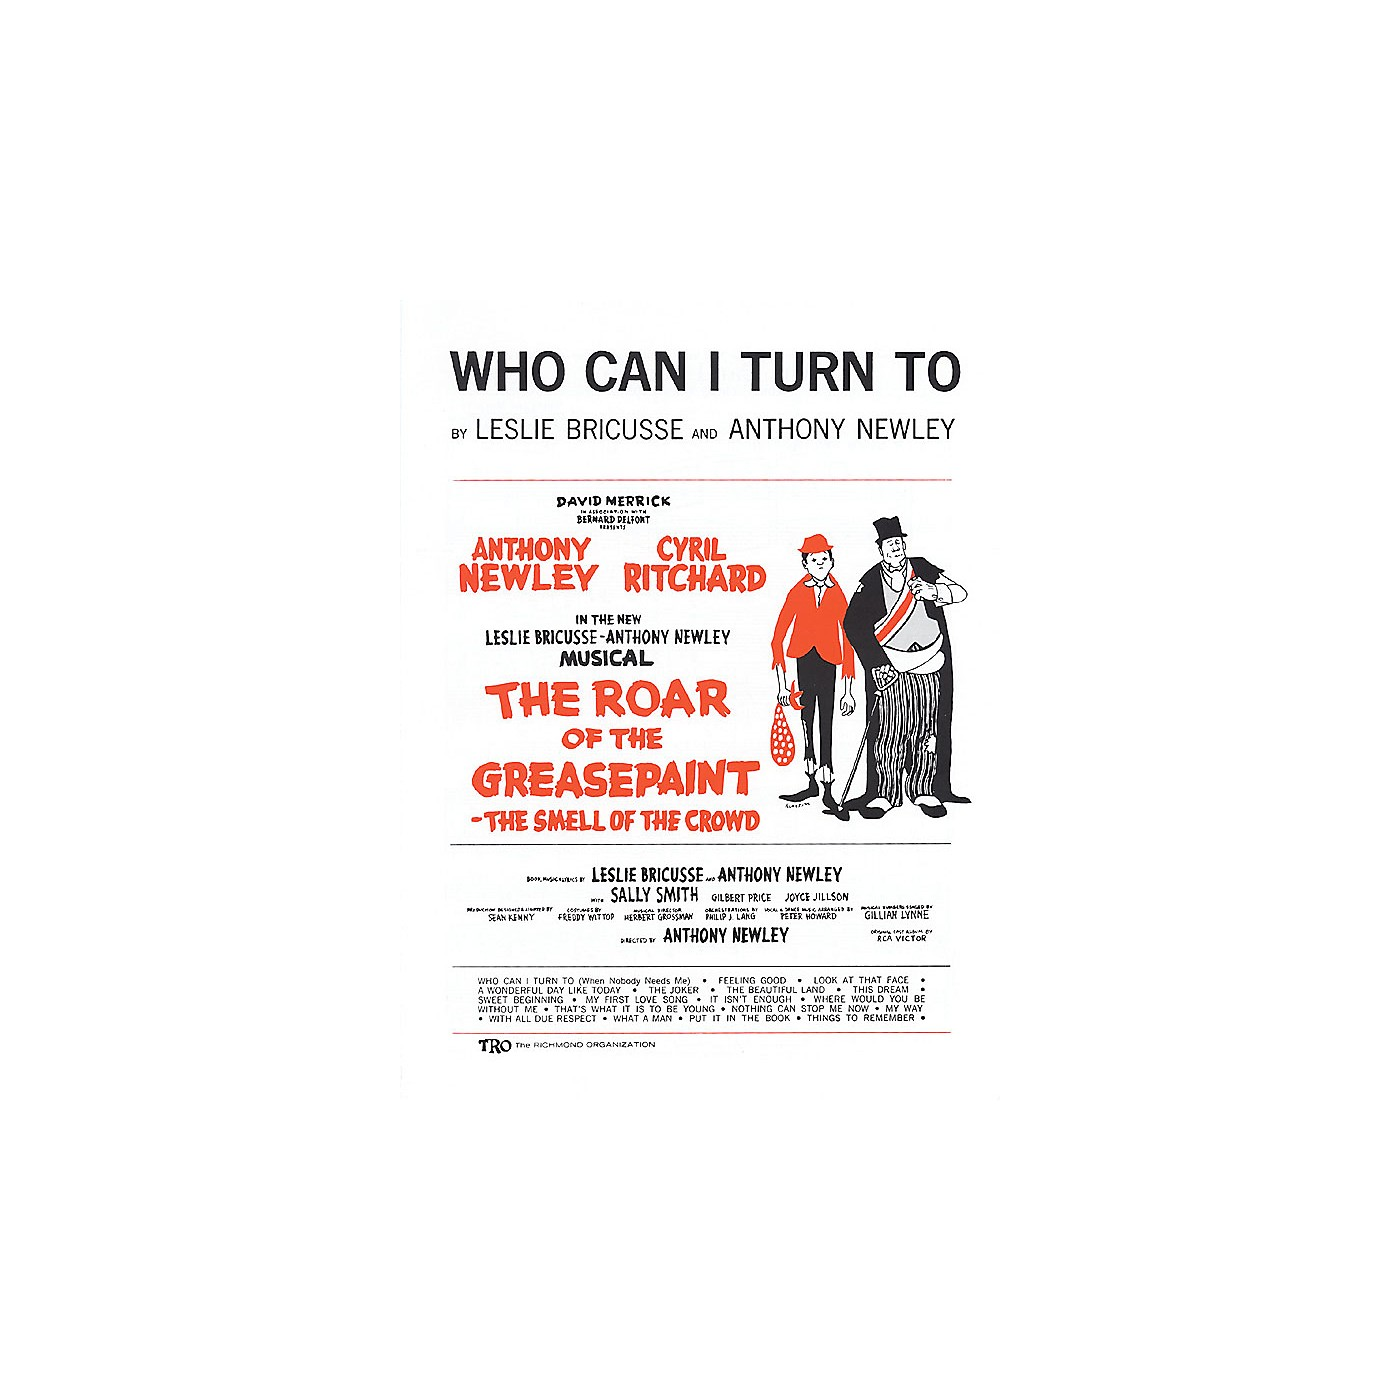 TRO ESSEX Music Group Who Can I Turn To Richmond Music ¯ Sheet Music Series thumbnail